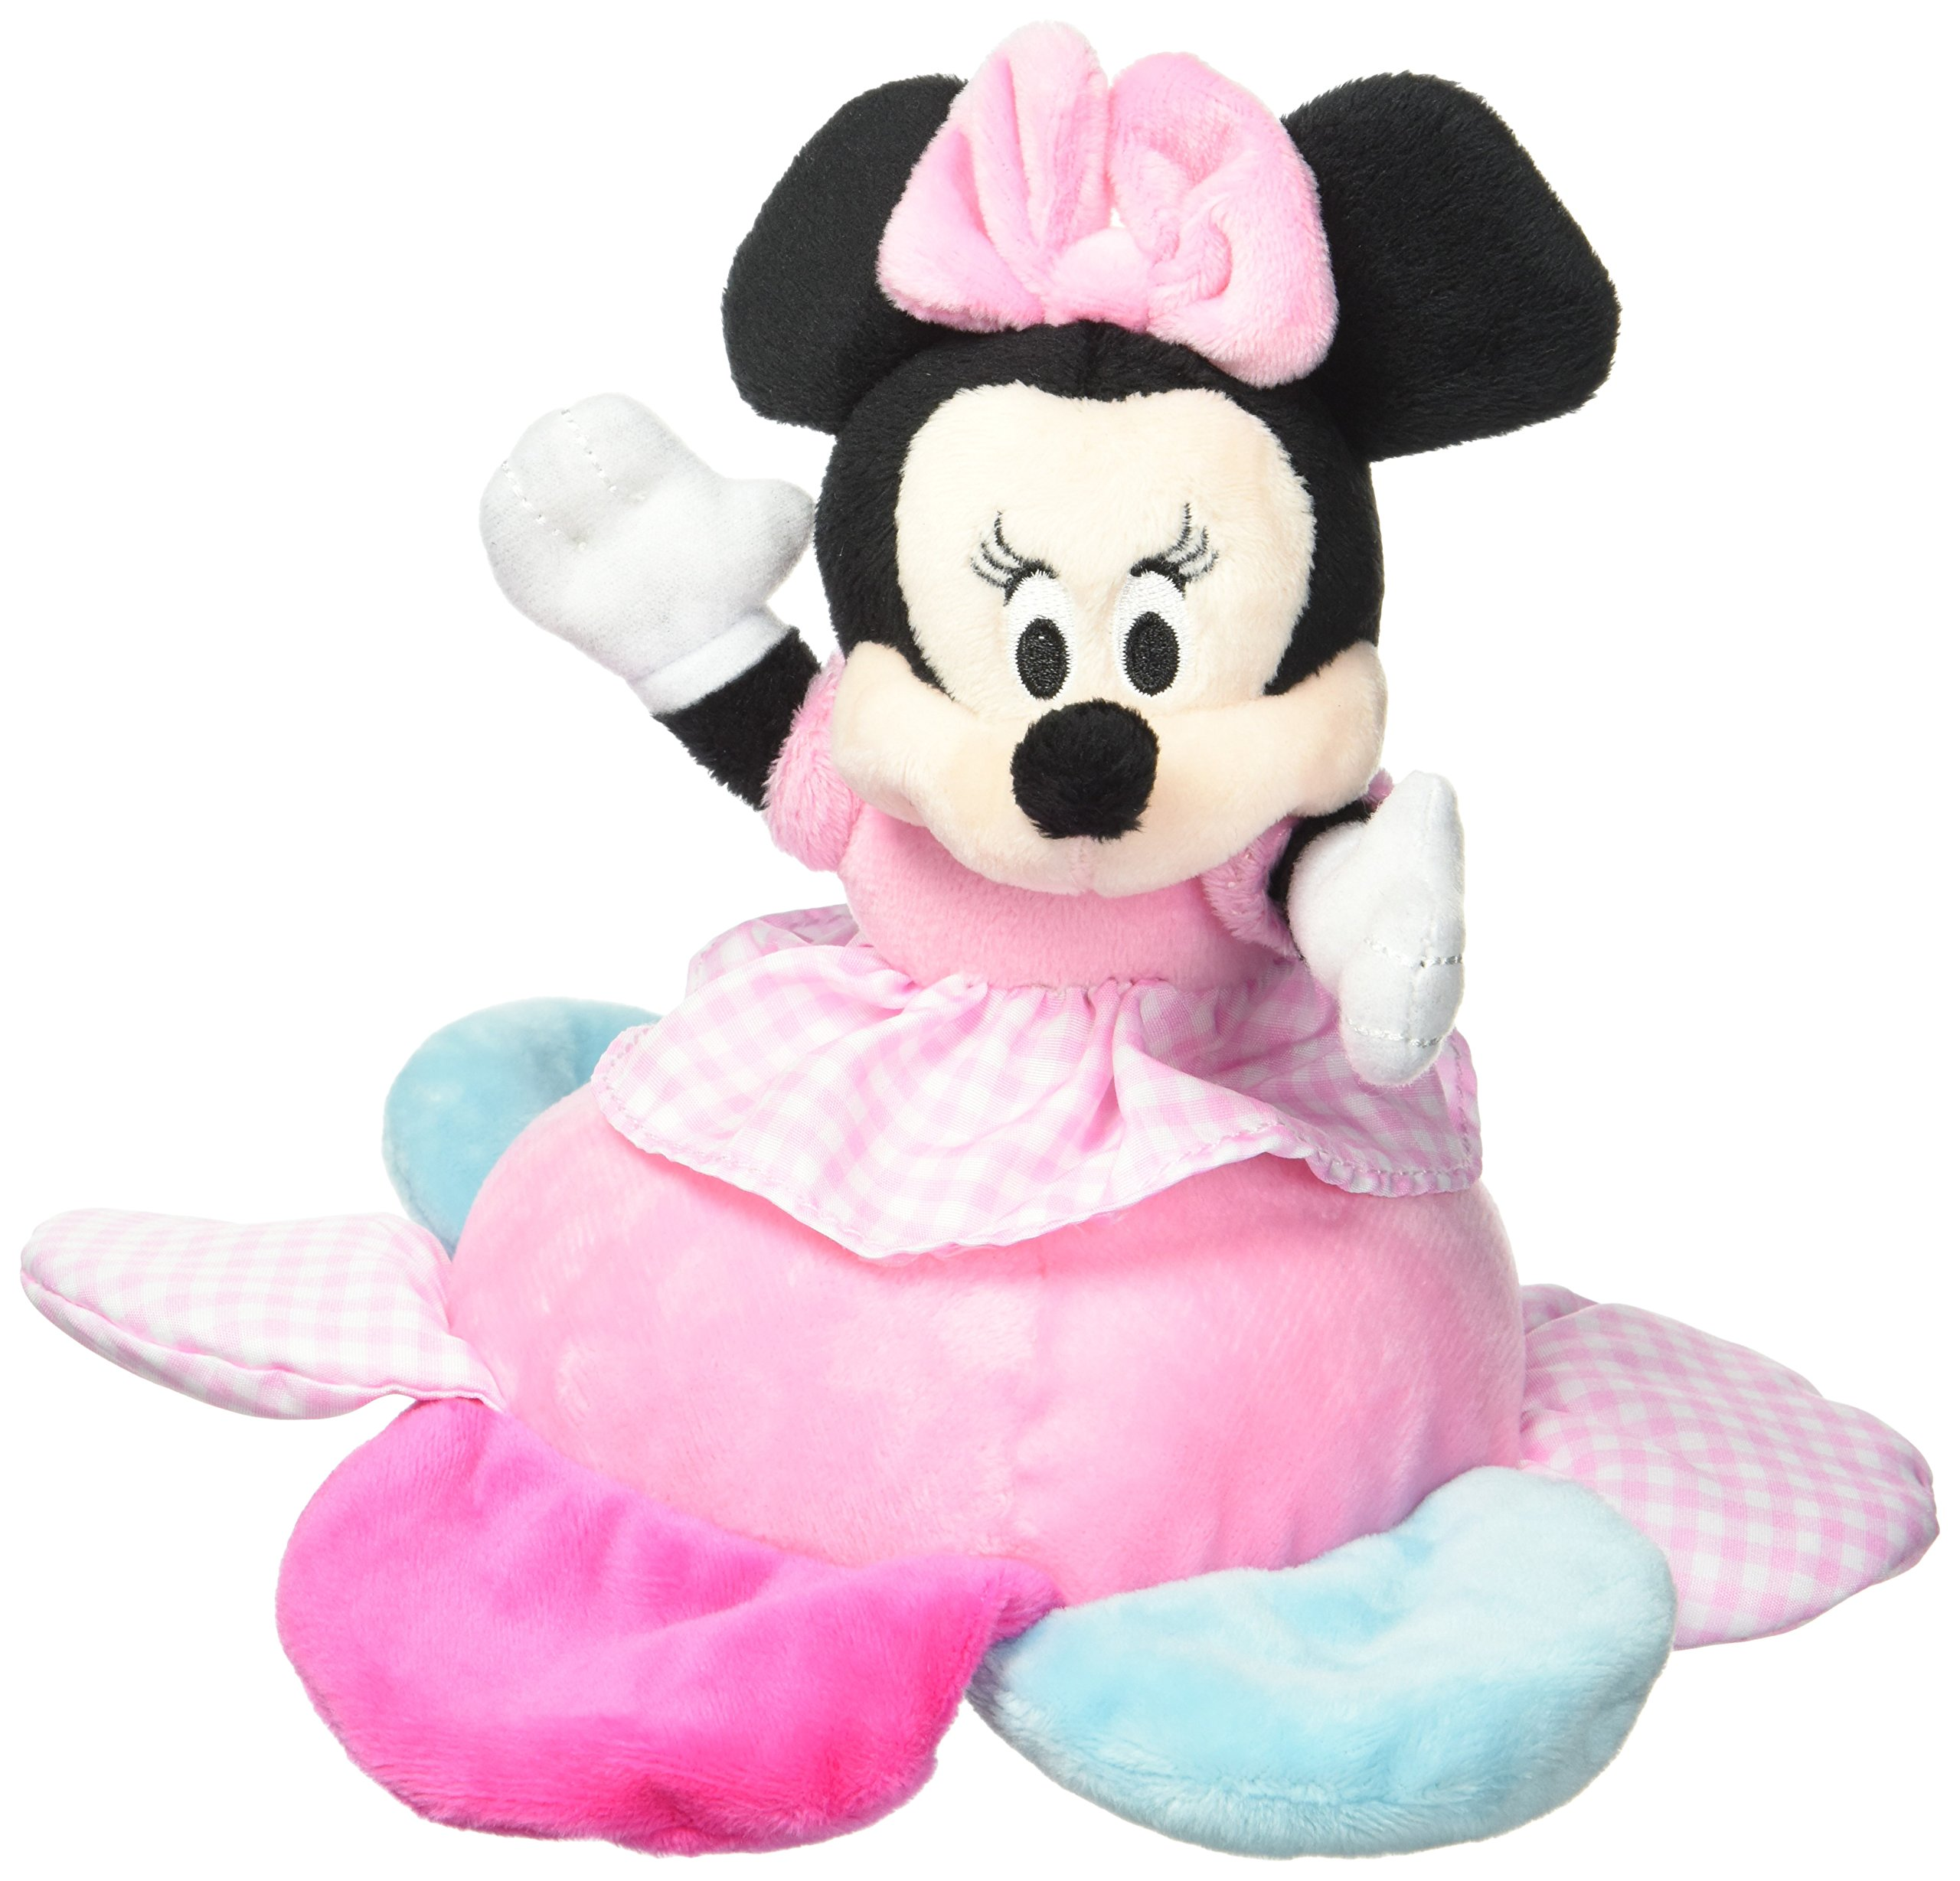 Kids Preferred Minnie Mouse Keywind Musical Plush, One Size